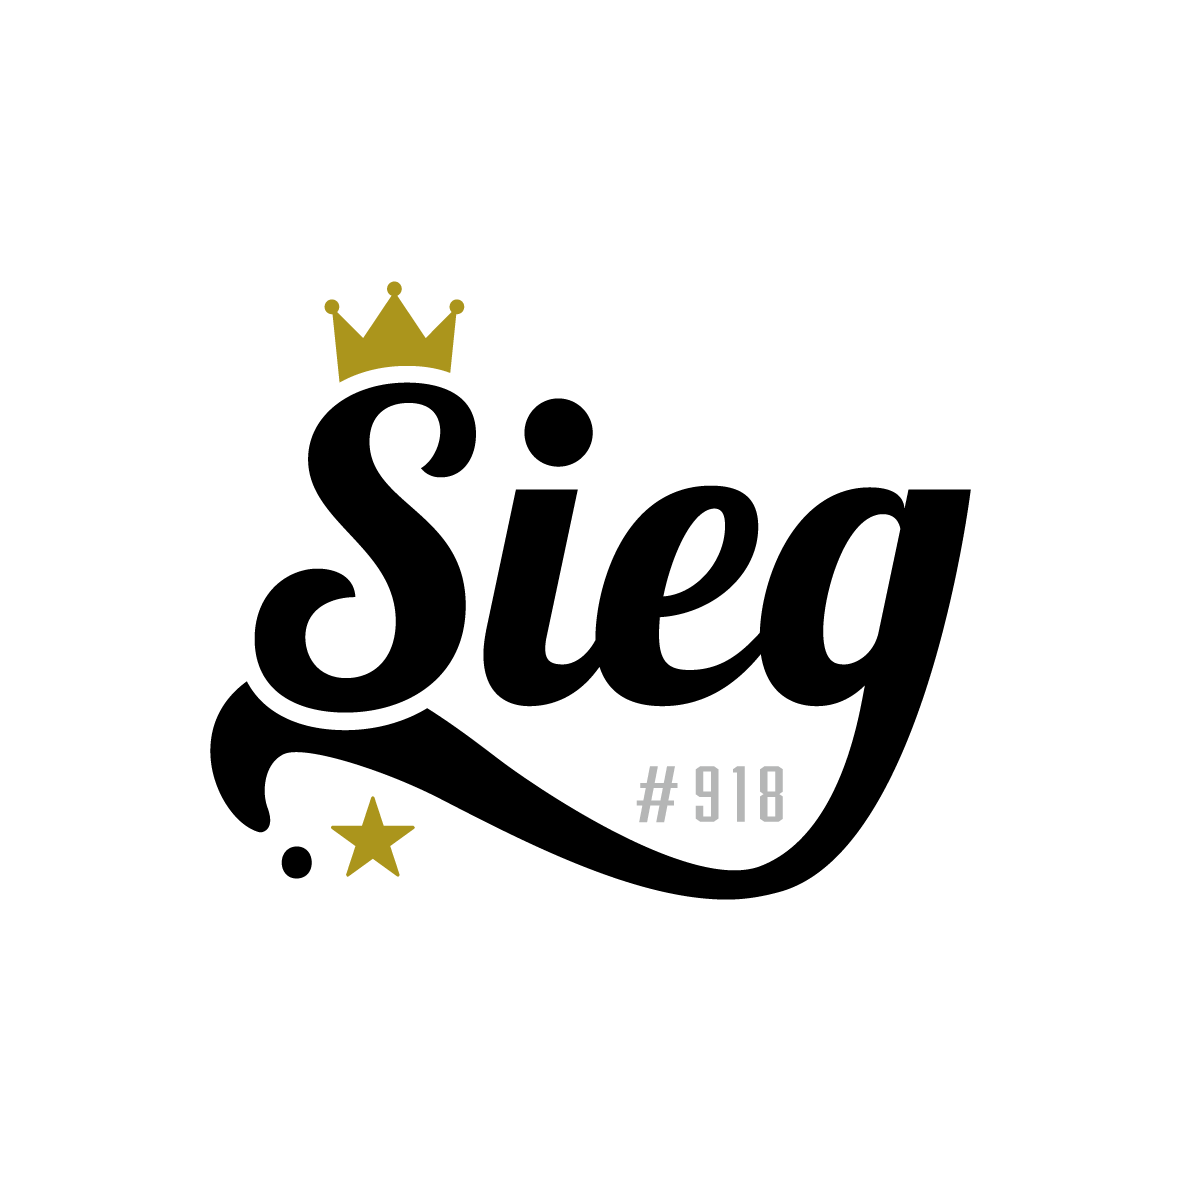 Sieg Home Visit Care